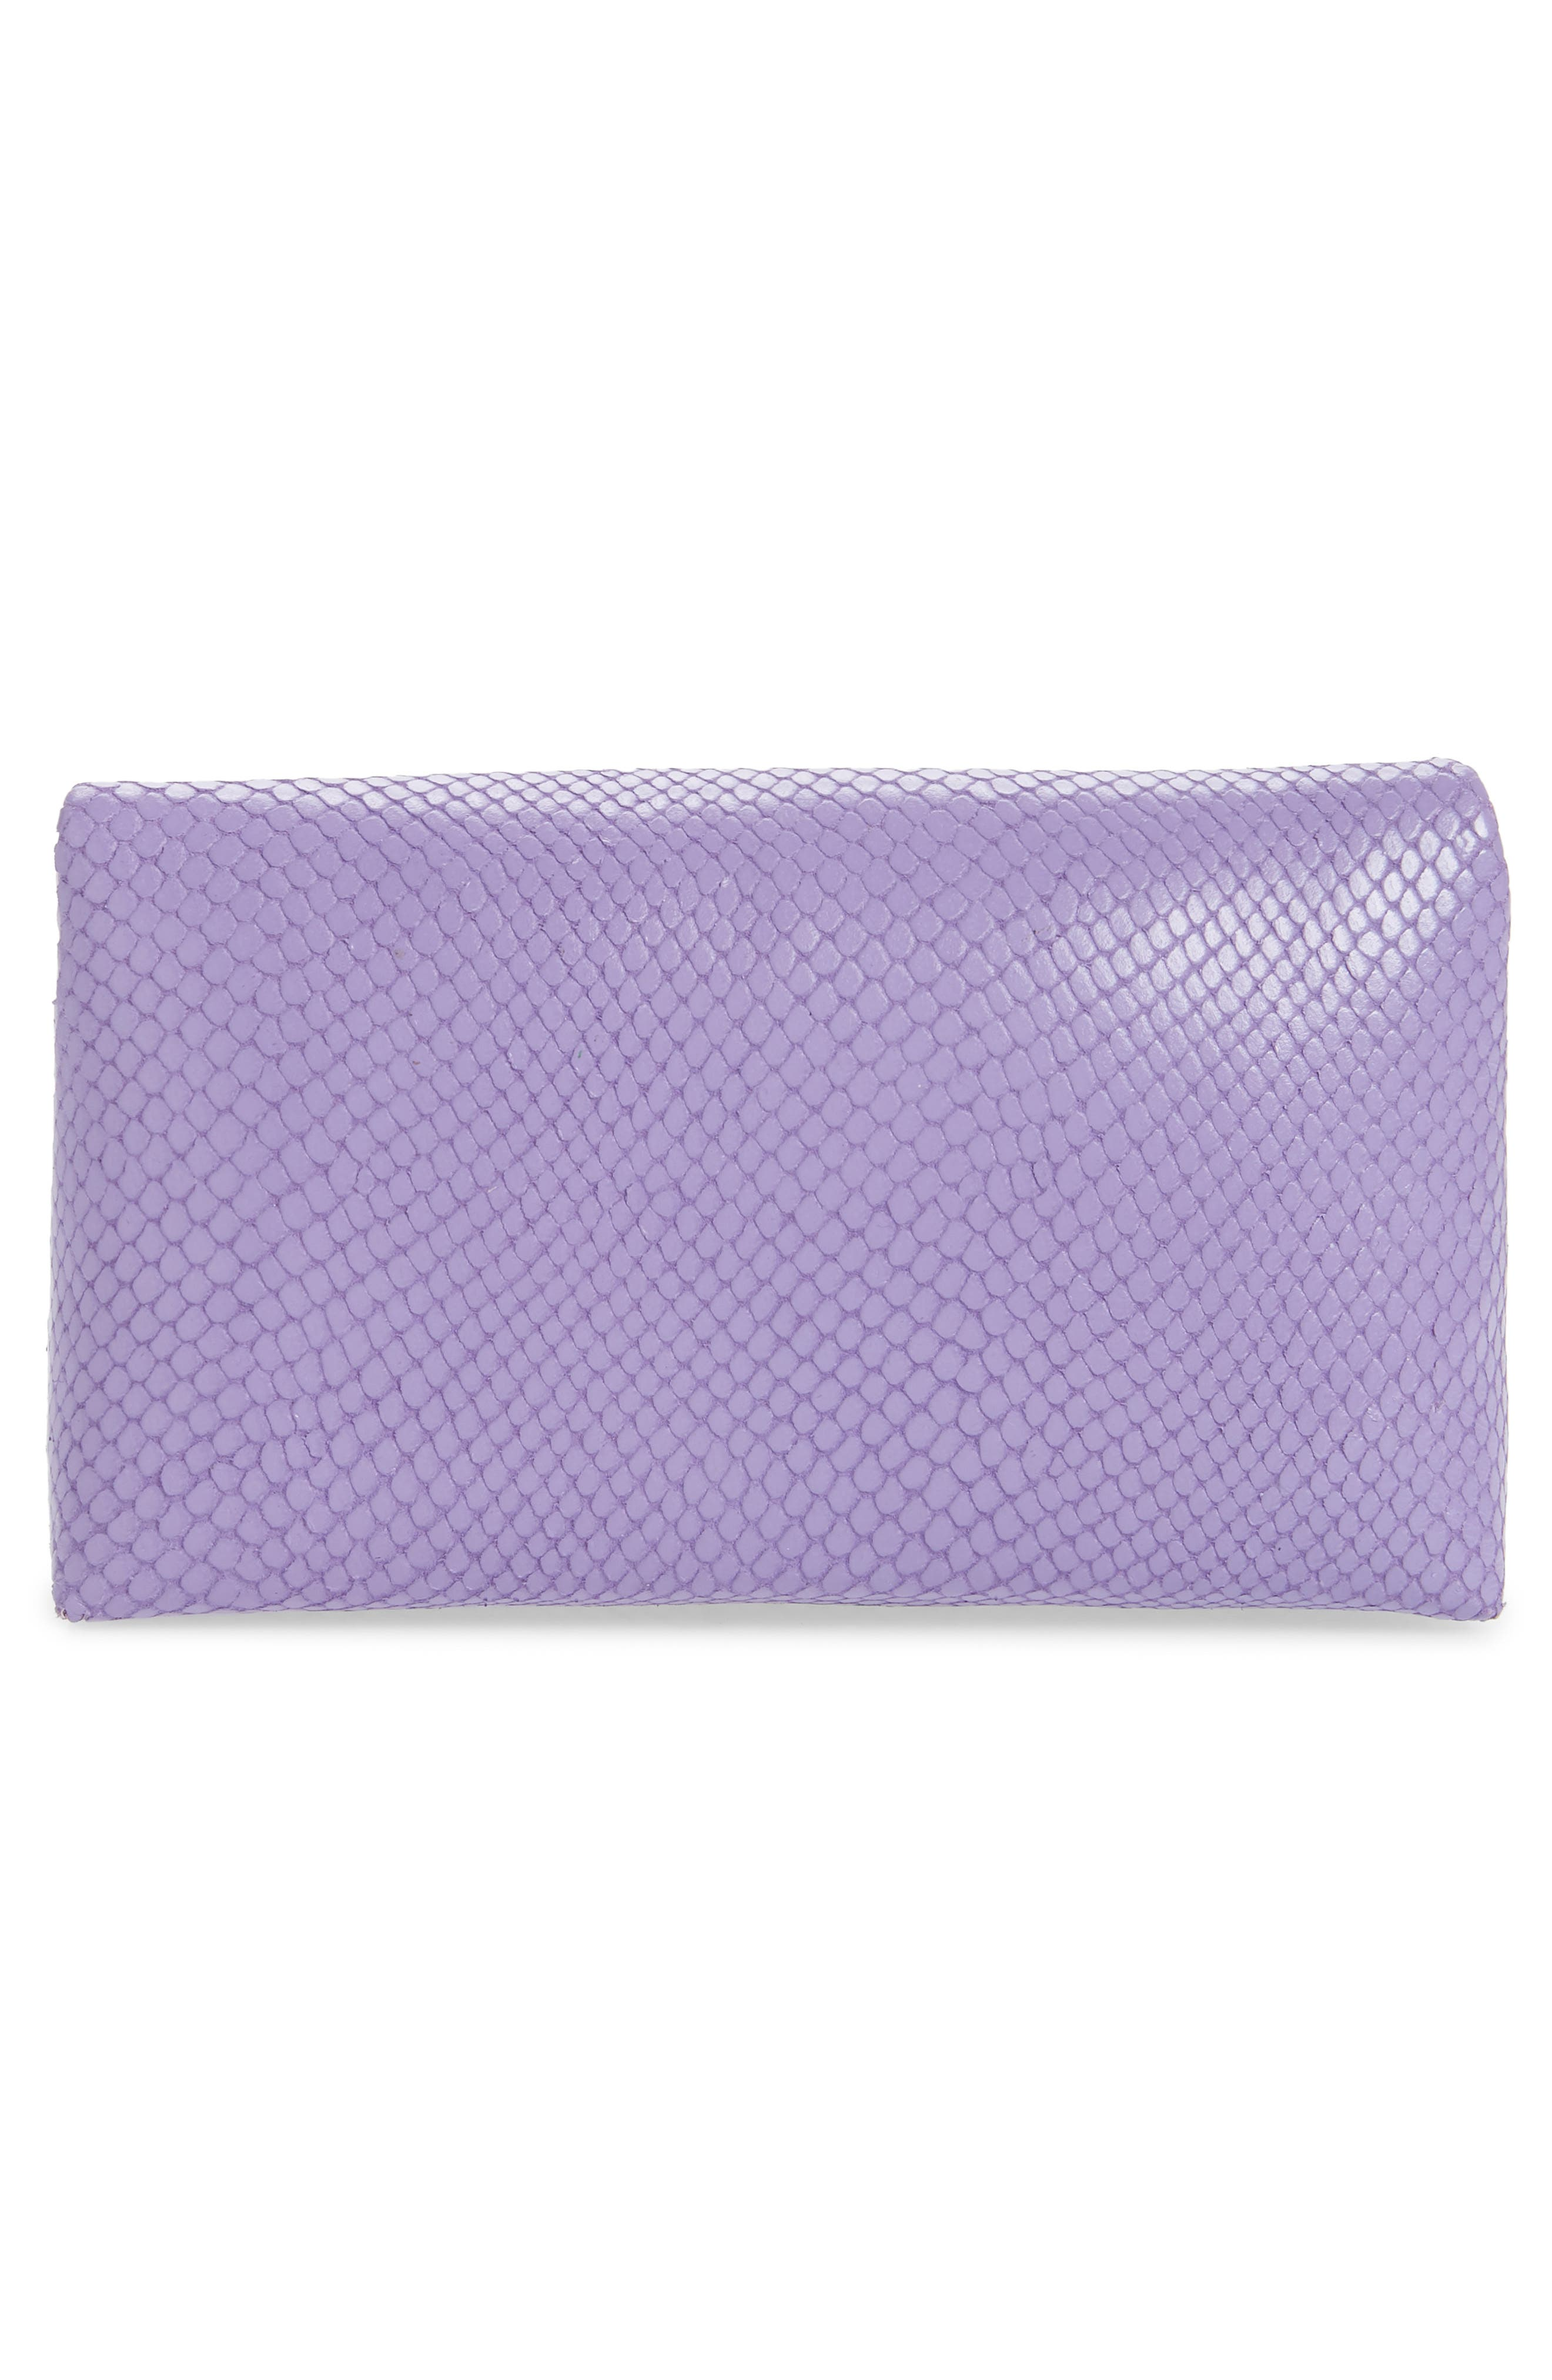 ,                             Small Python Embossed Leather Envelope Clutch,                             Alternate thumbnail 3, color,                             LILAC